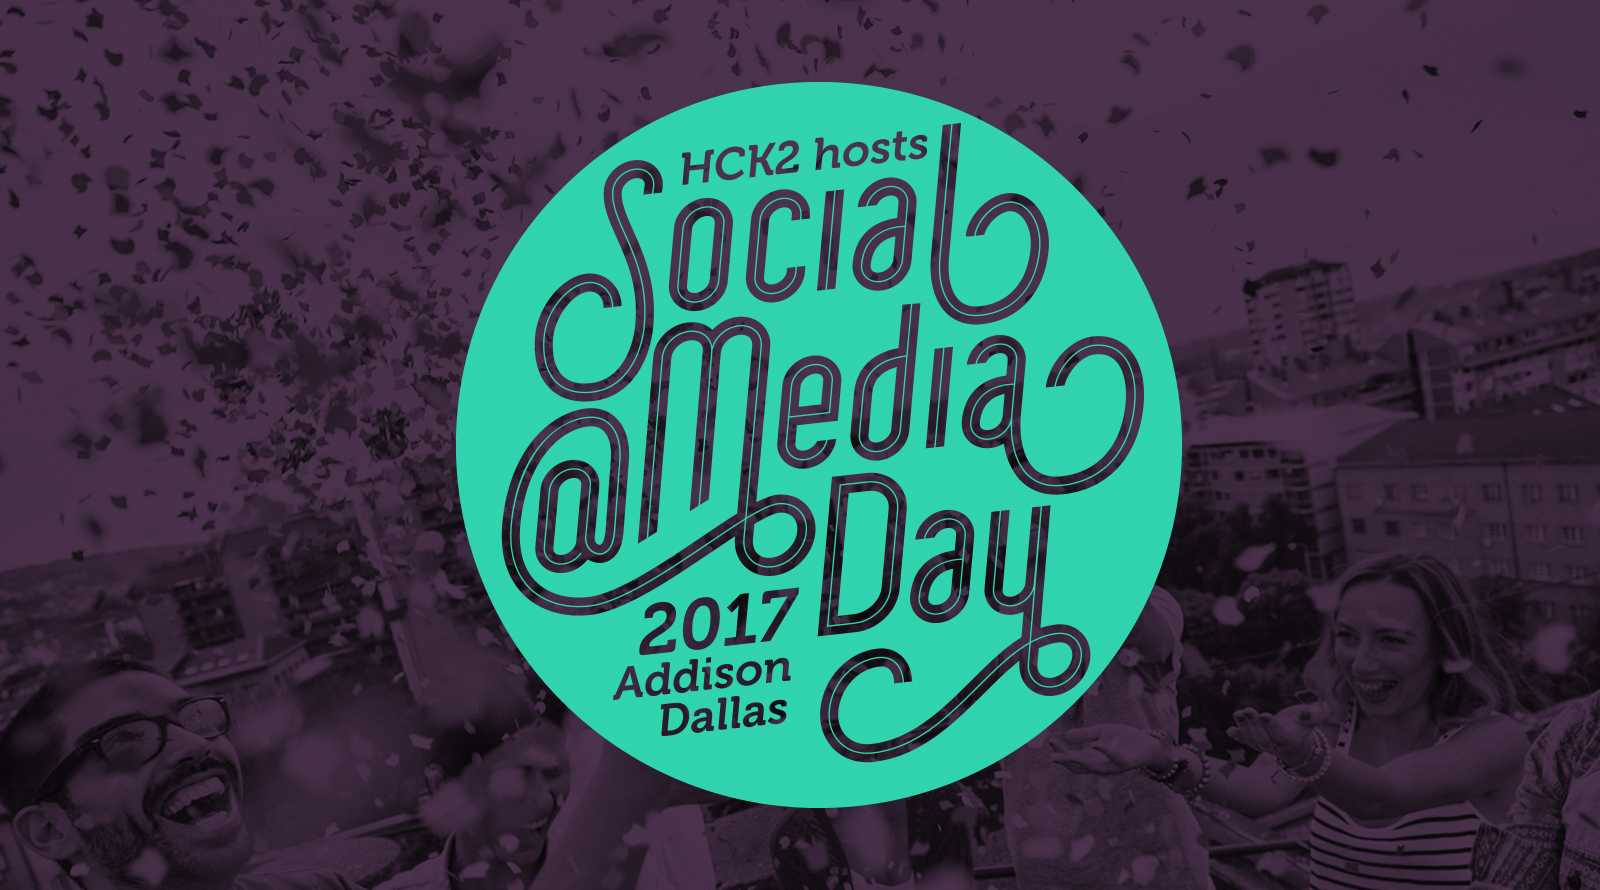 HCK2 hosts social media day 2017 Addison and Dallas - mint green logo on deep purple background with young group of people celebrating with confetti on a rooftop